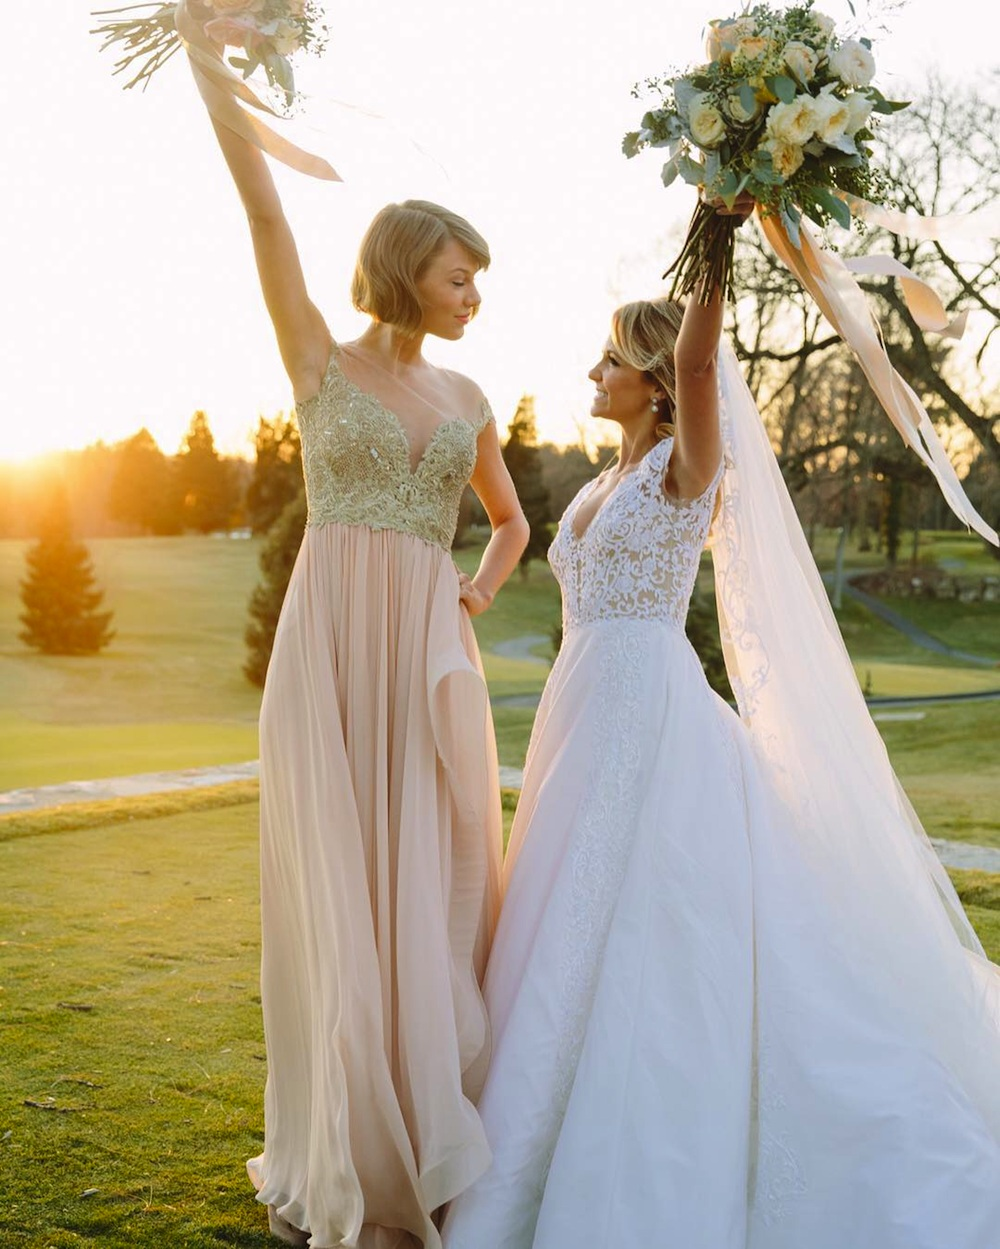 Celebrity Wedding Guests: What Celebs Wear to Weddings - theFashionSpot